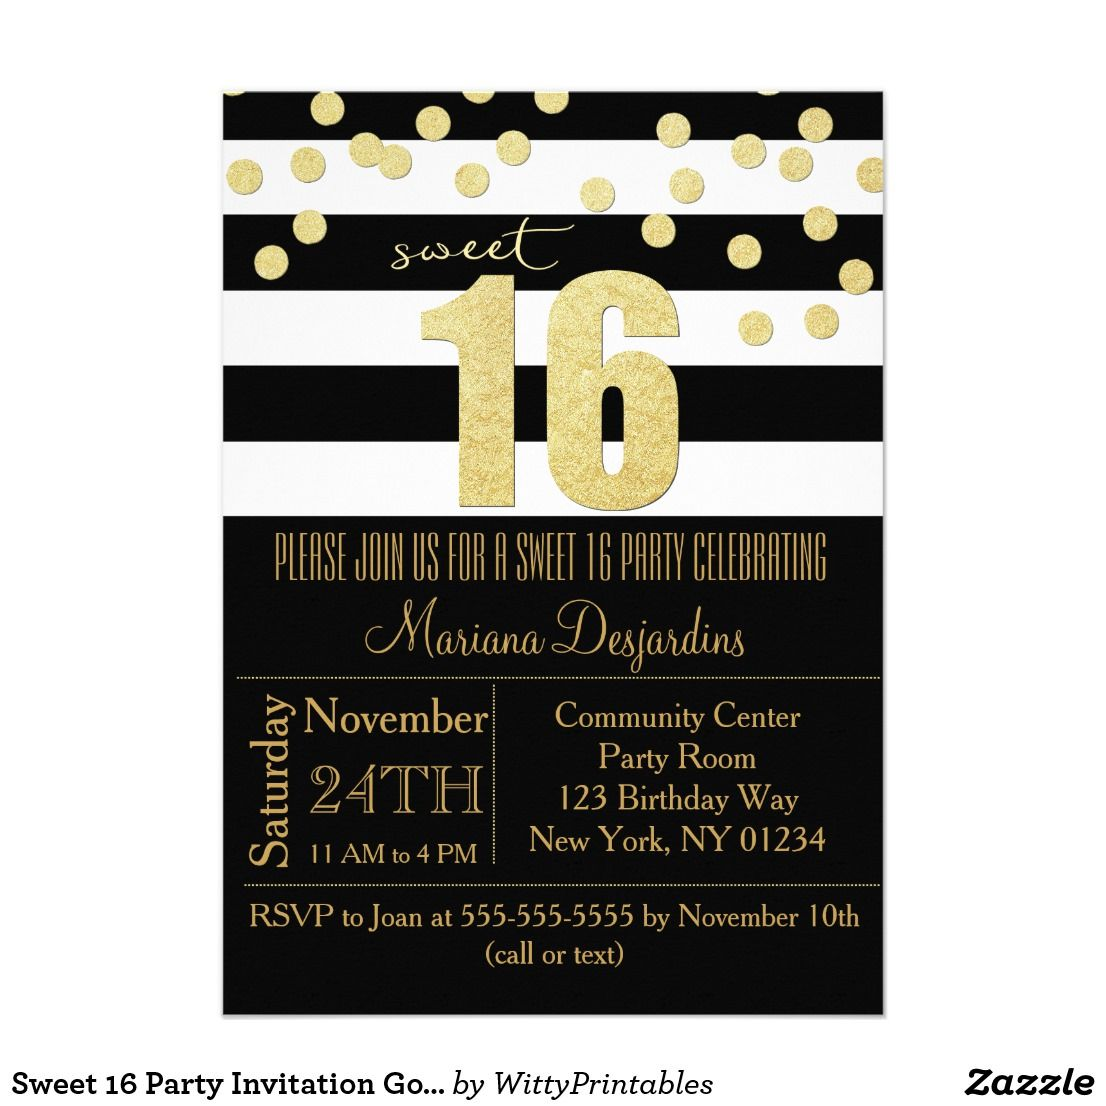 Sweet 16 Party Invitation Gold Black White Sweet 16 Party